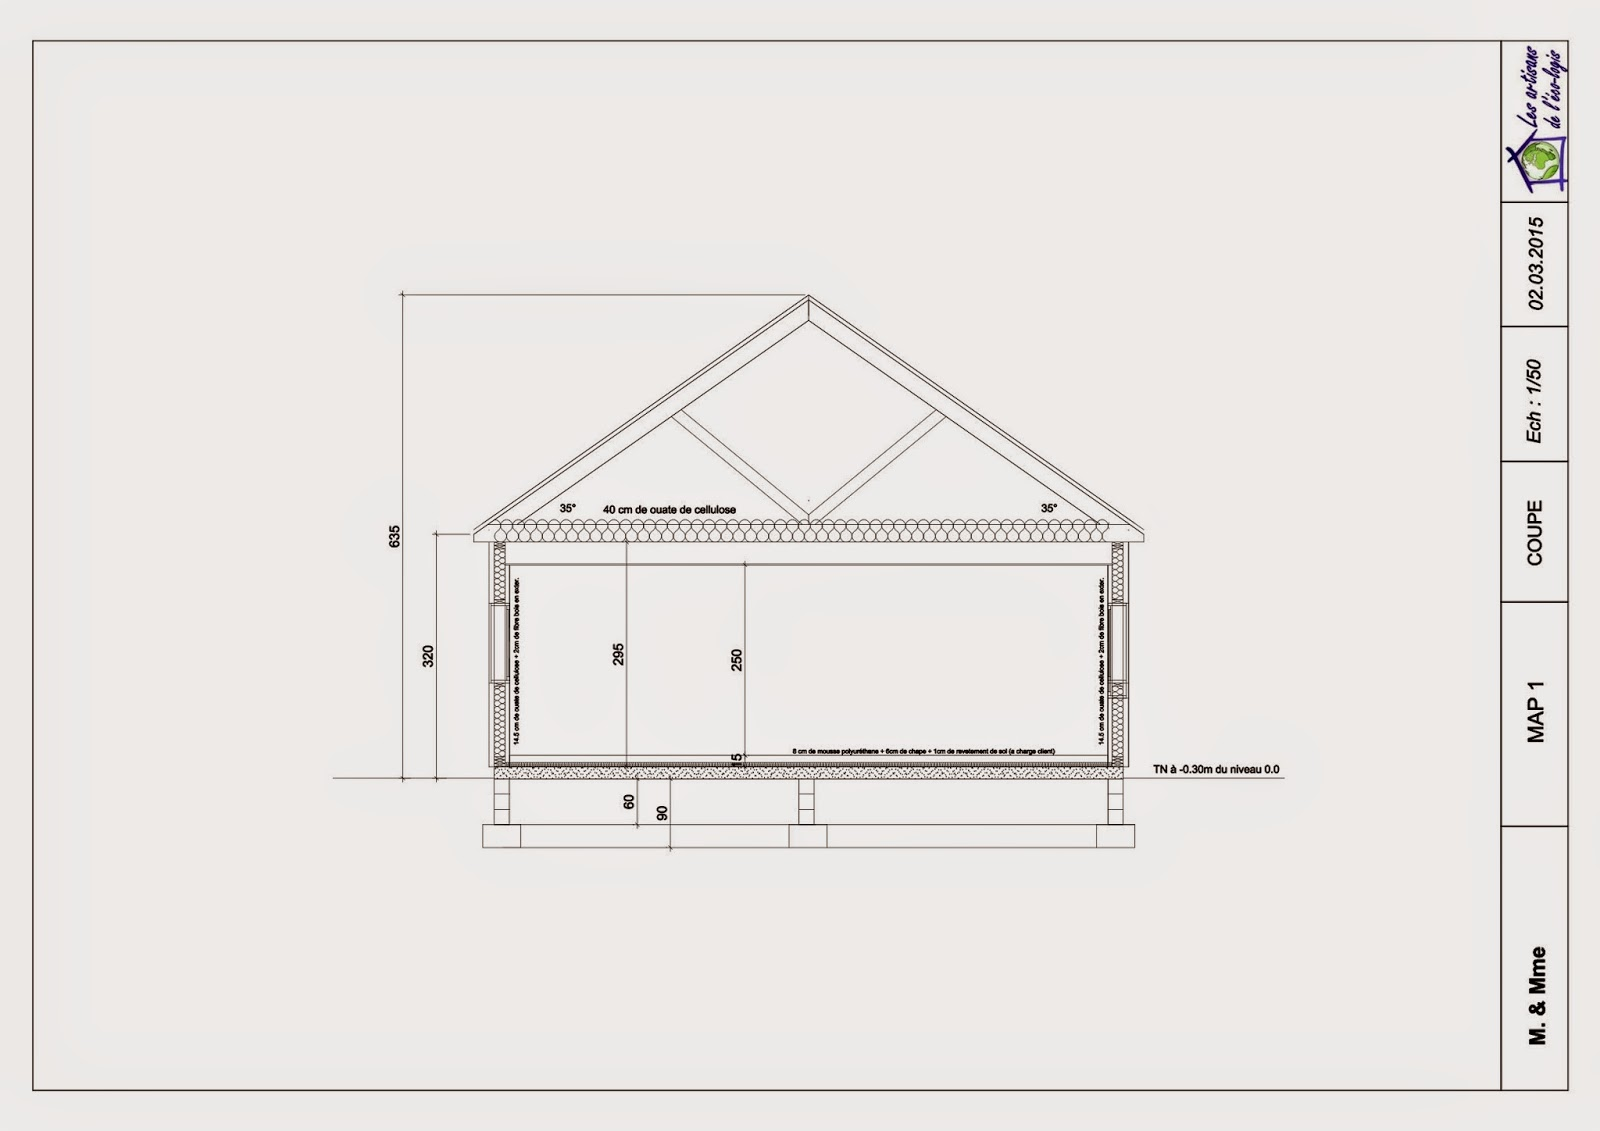 Plan maison bioclimatique plain pied for Conception de construction de maisons